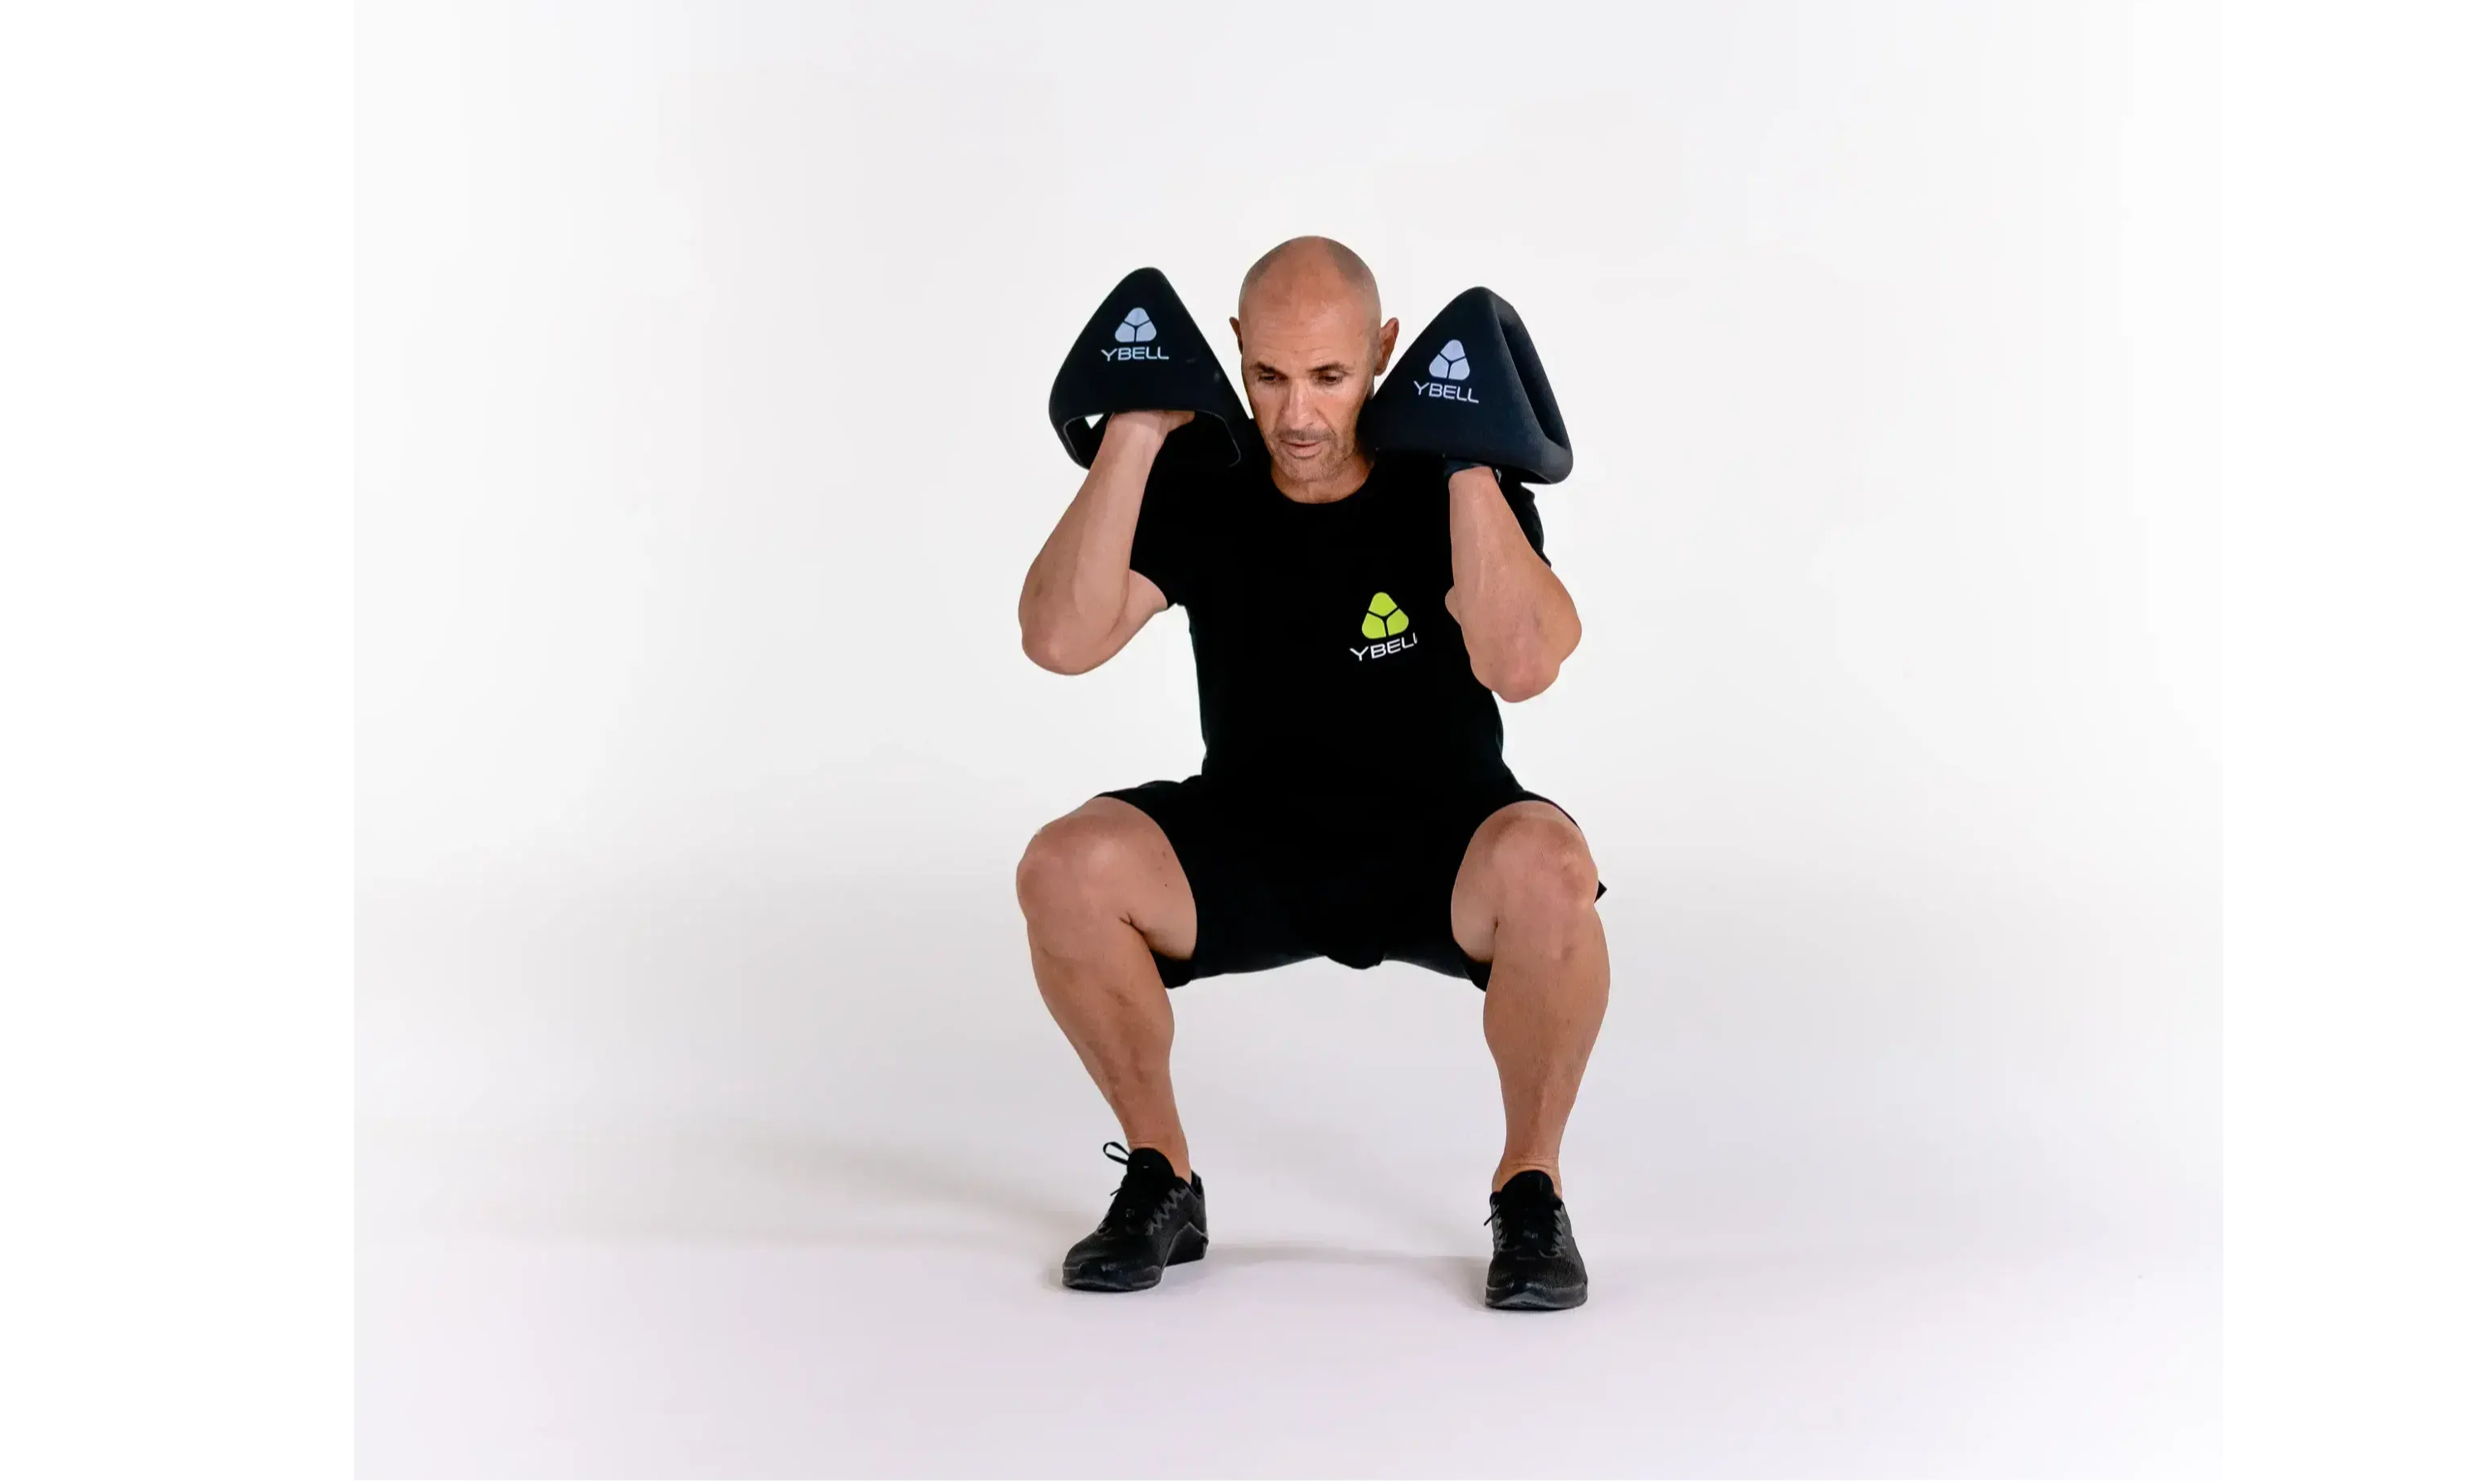 Aaron Lawrence demonstrates a dumbbell squat press with a set of YBells